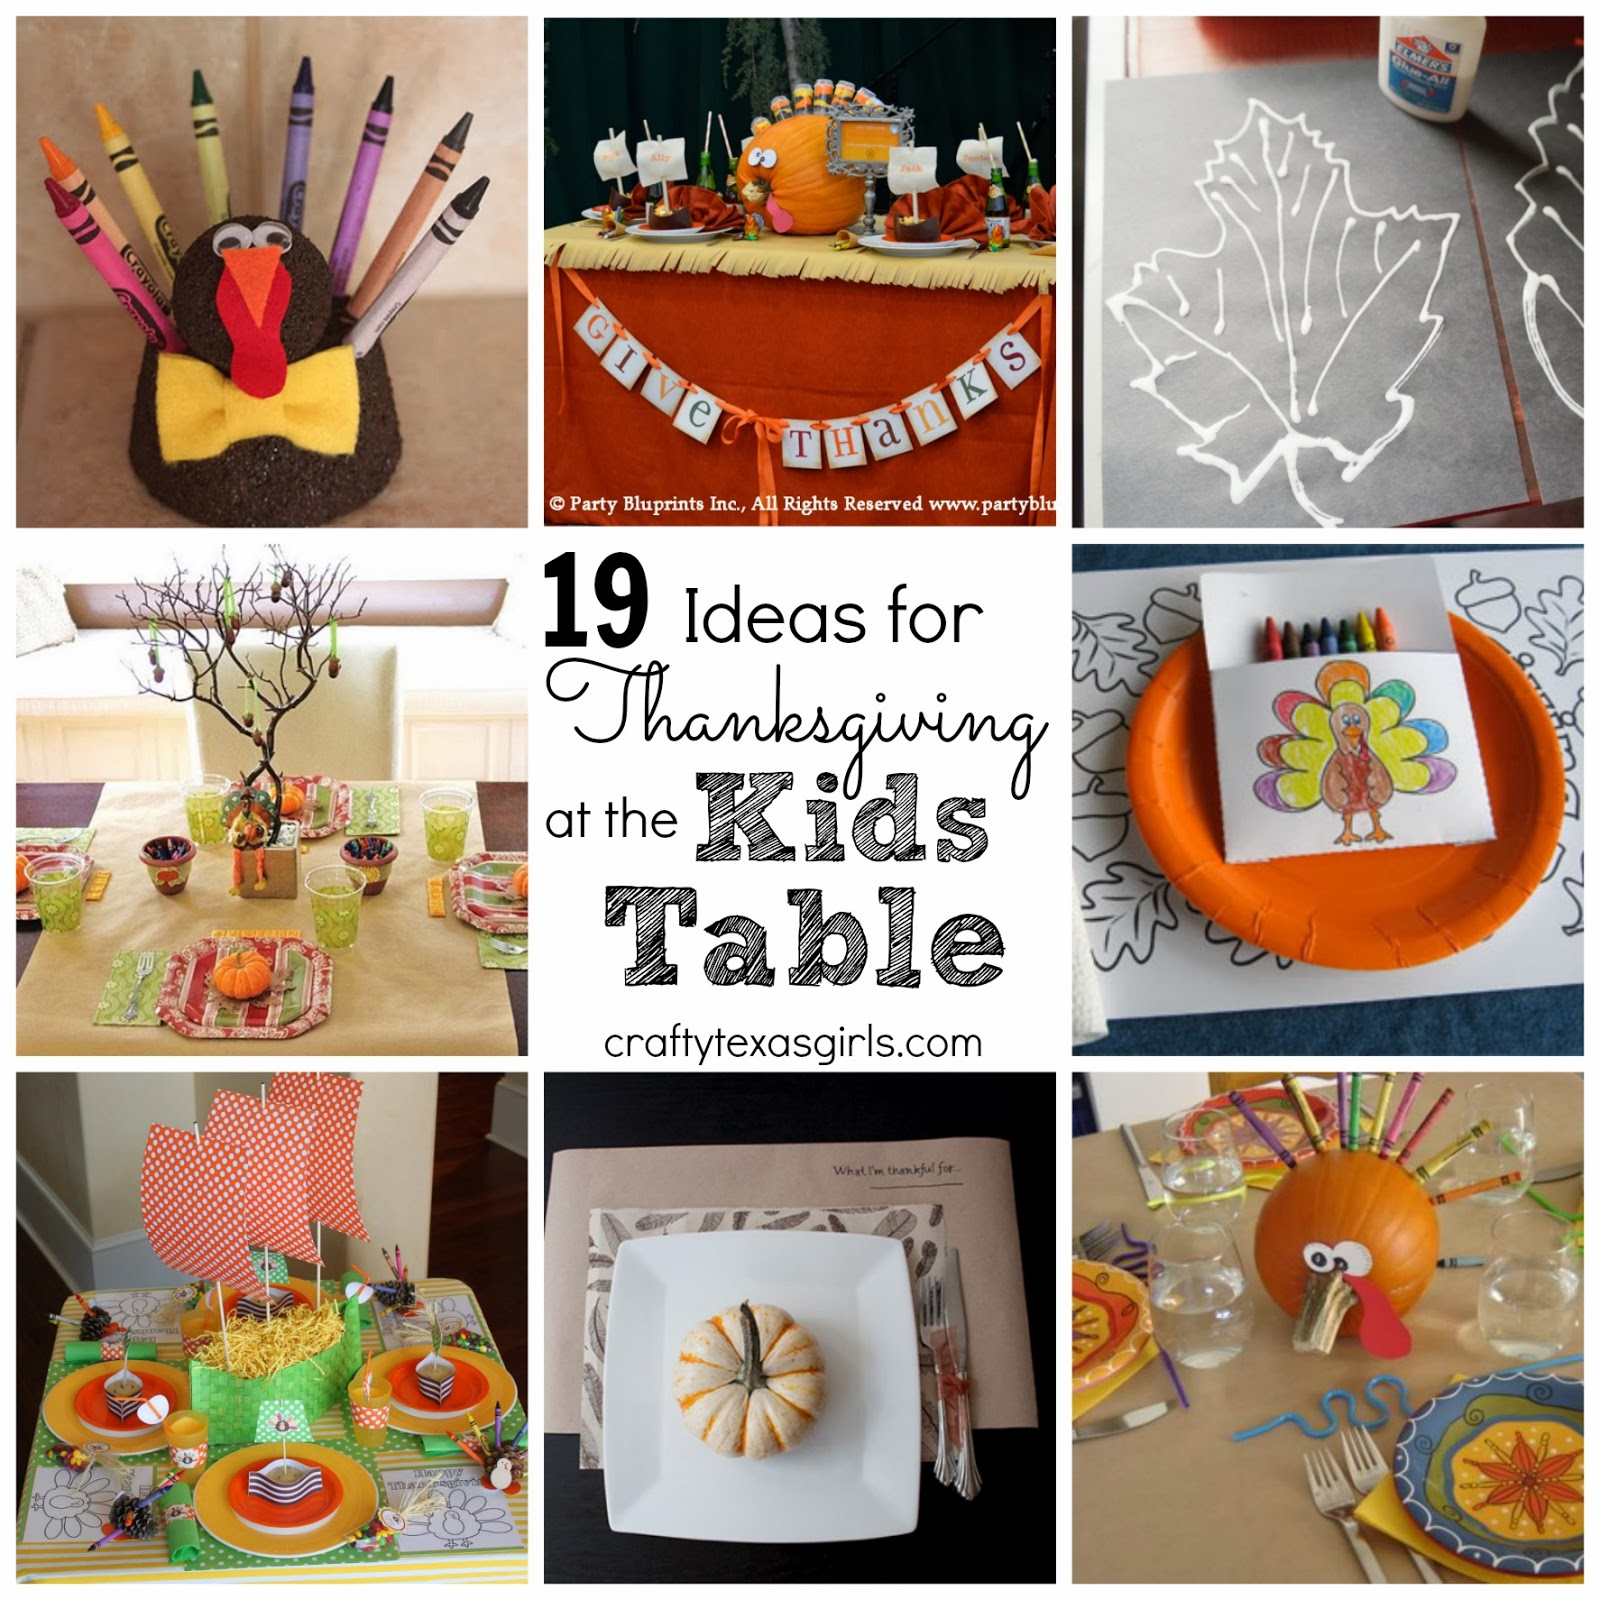 Crafty texas girls thanksgiving table ideas for kids